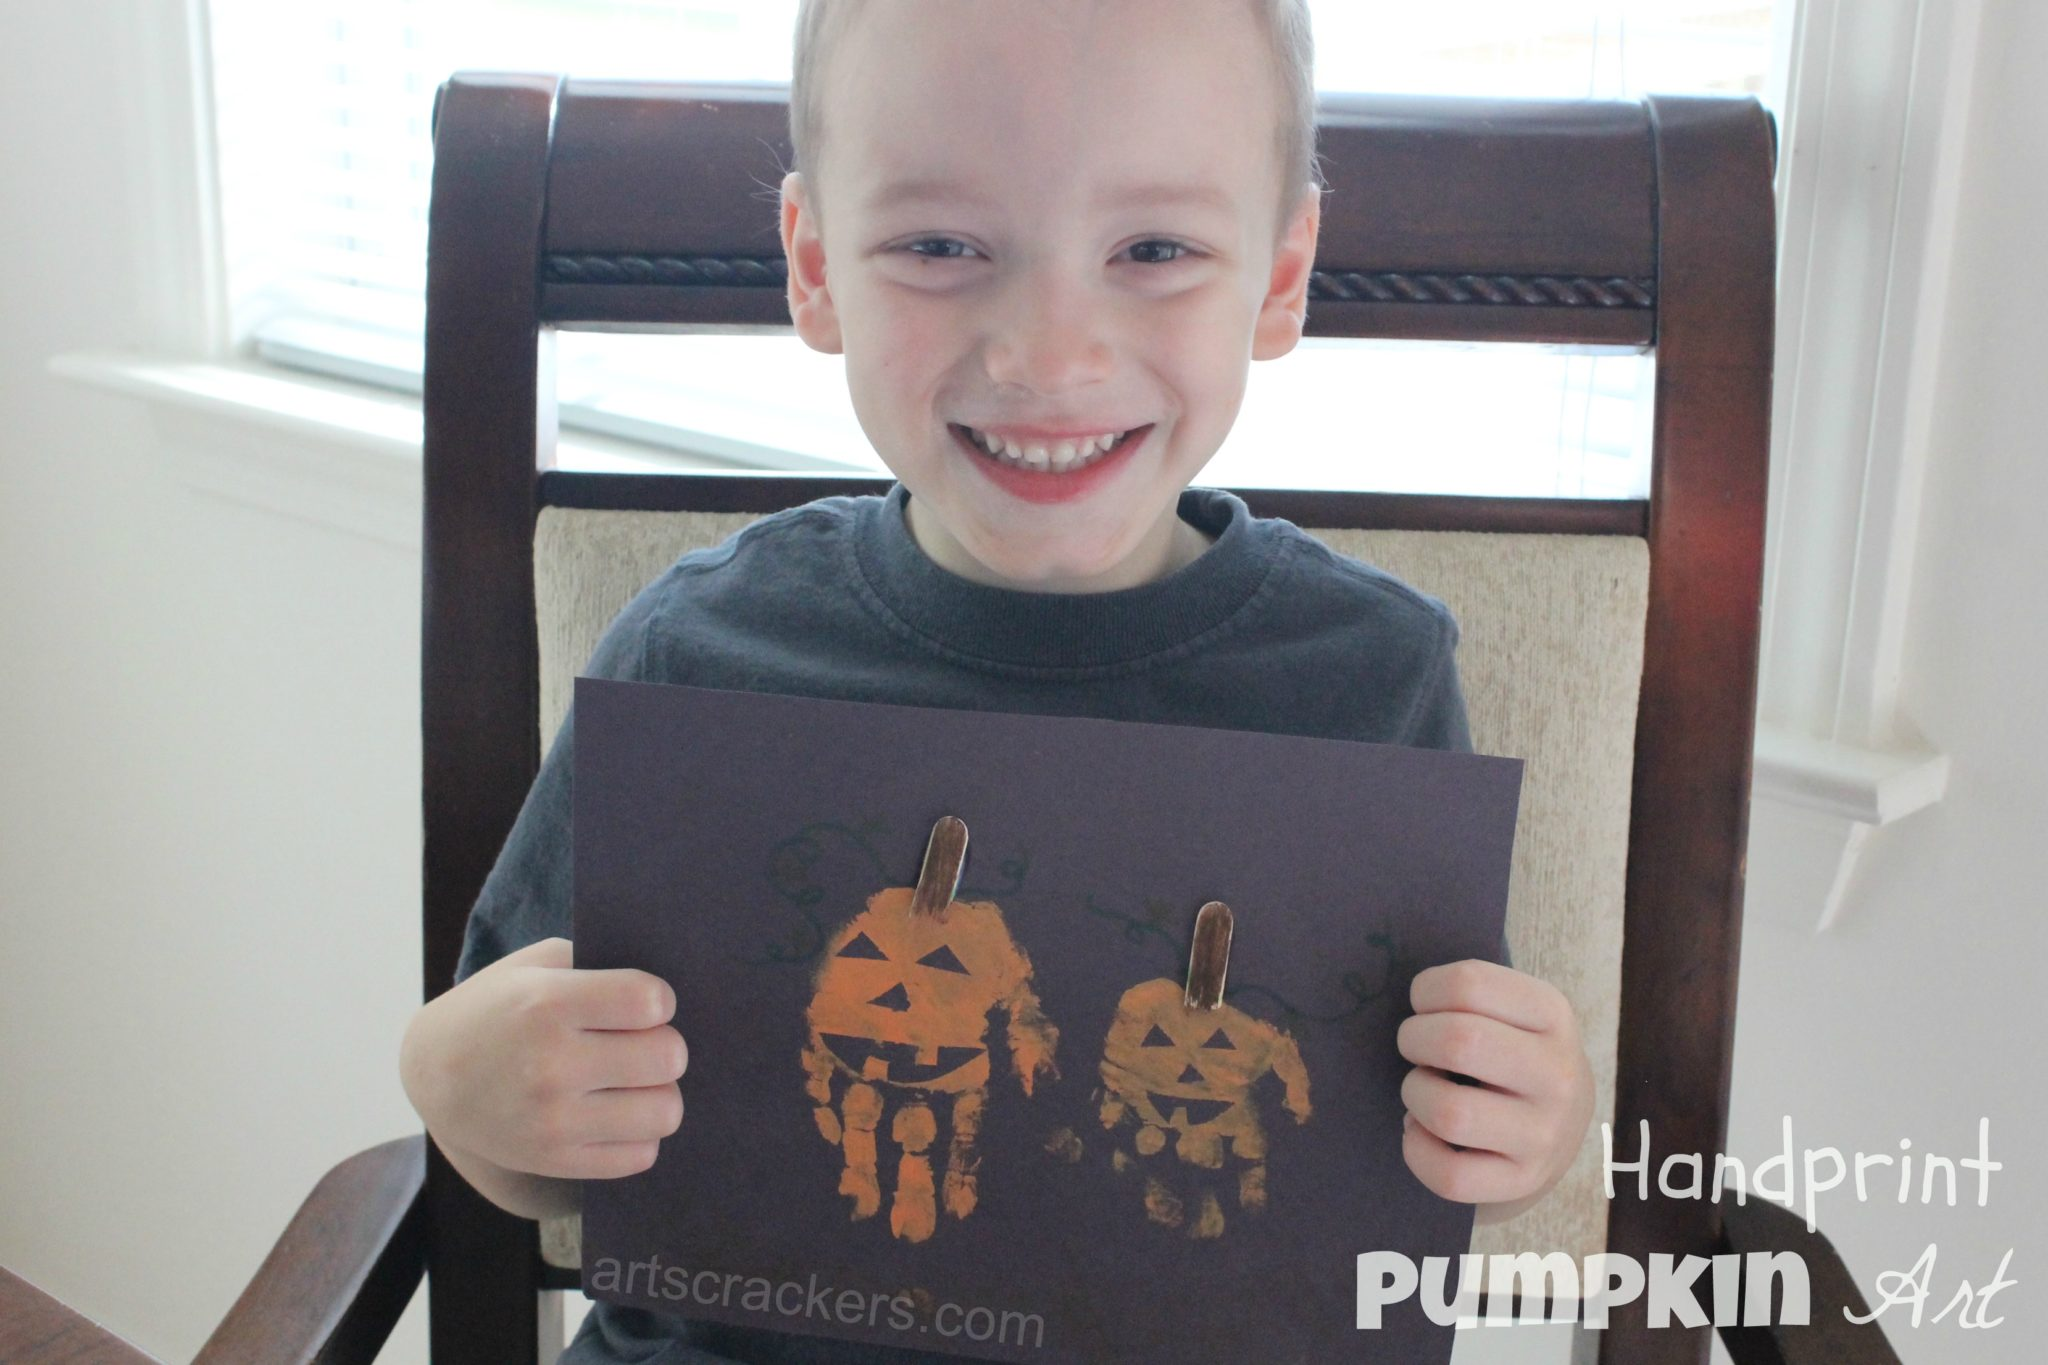 Handprint Pumpkin Art